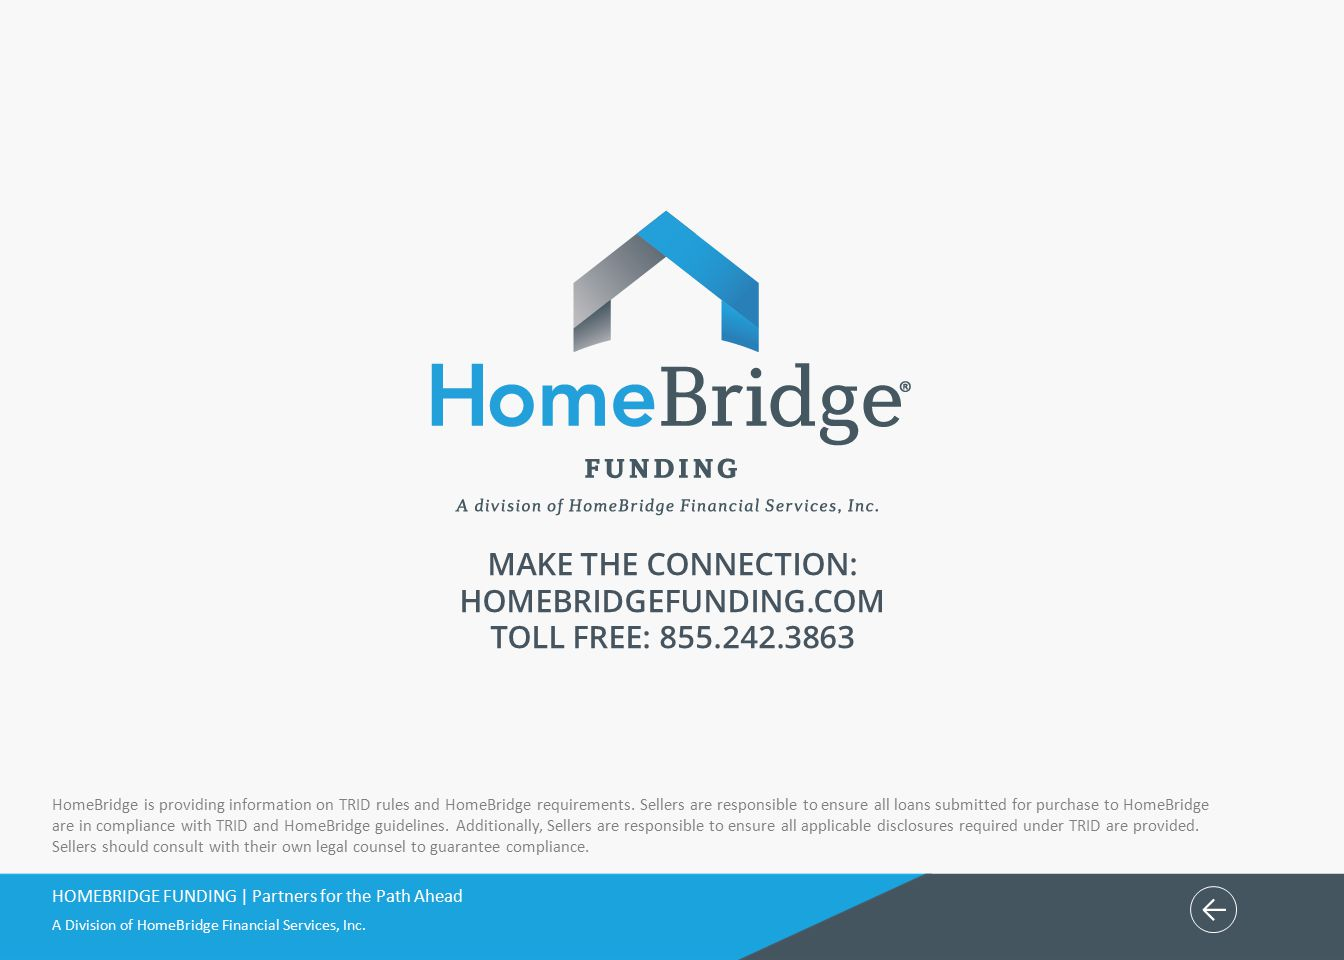 MAKE THE CONNECTION: HOMEBRIDGEFUNDING.COM TOLL FREE: ←